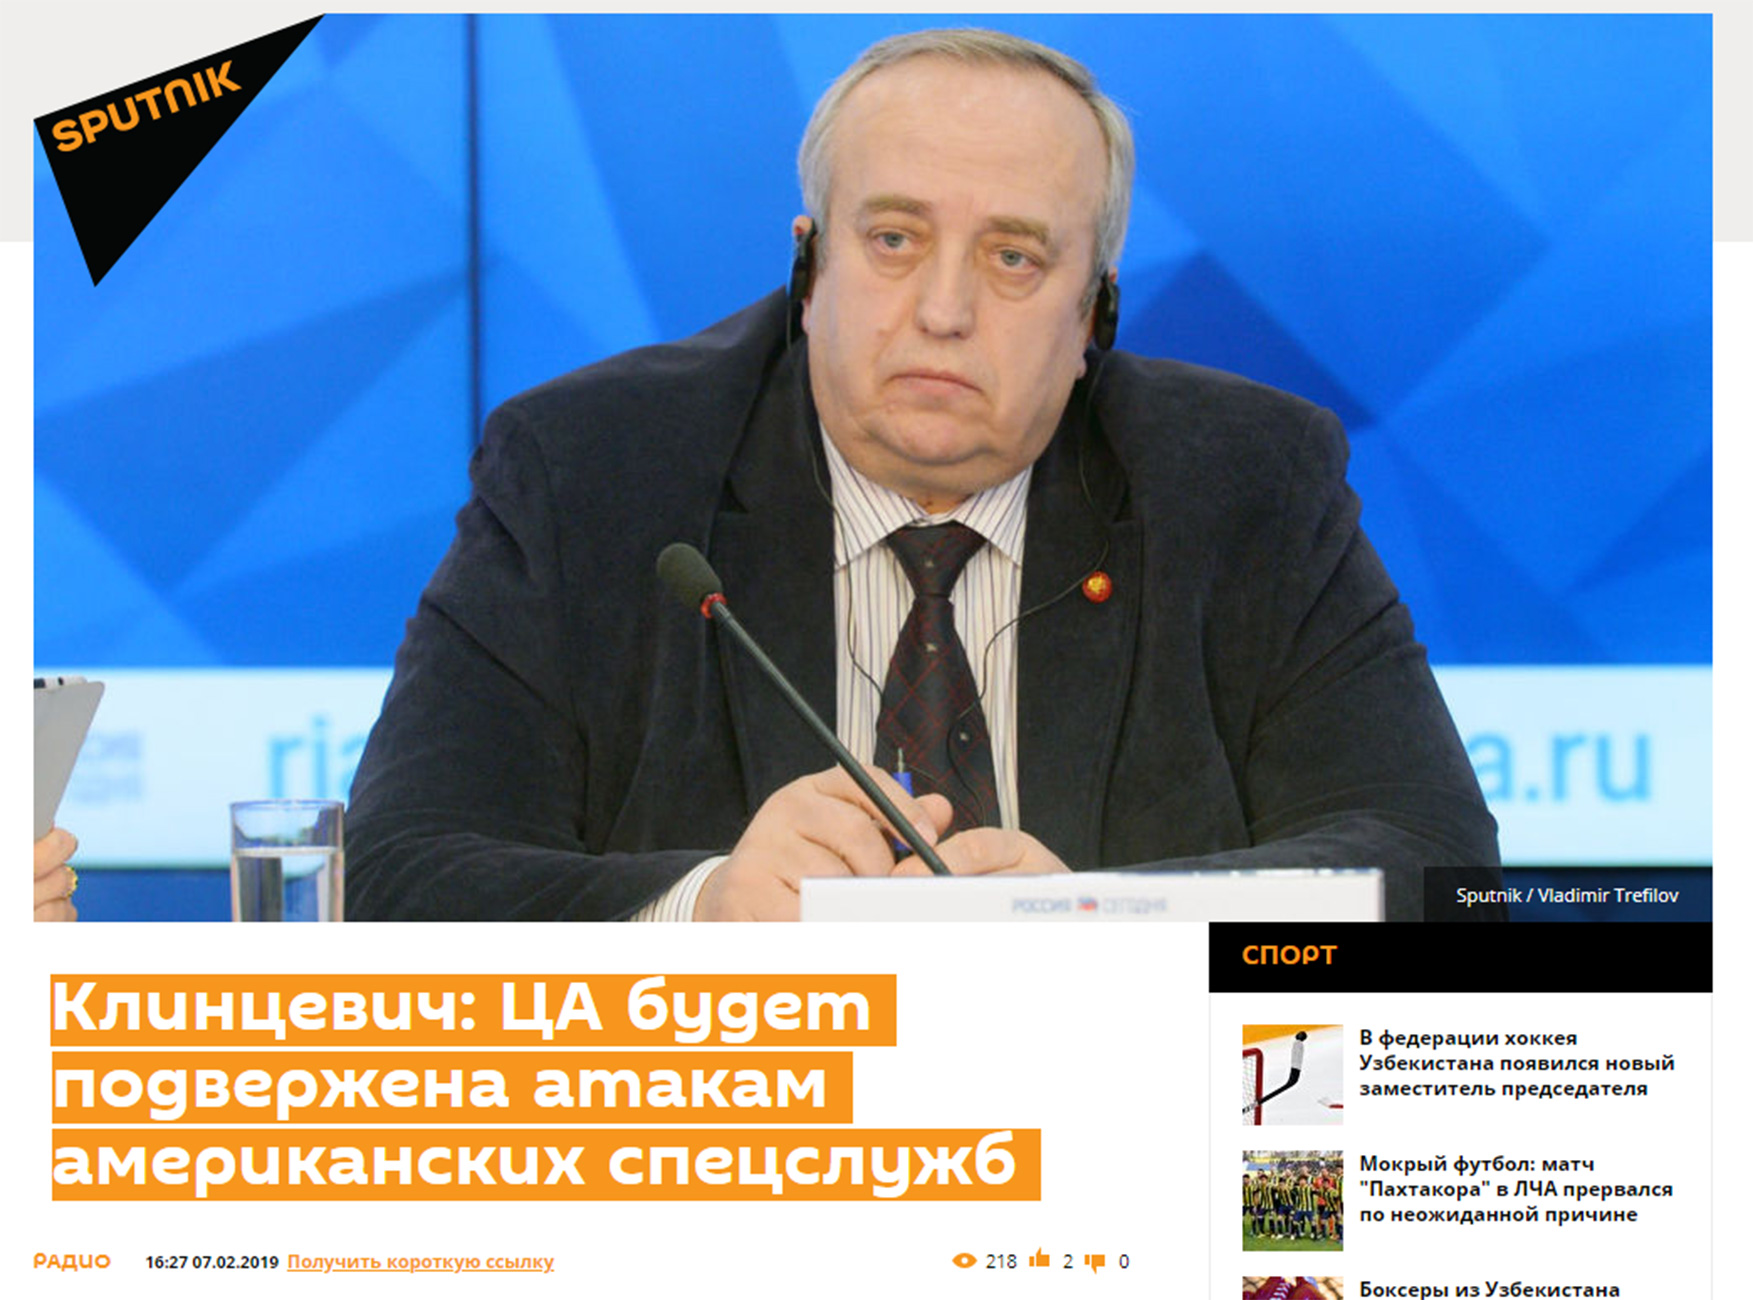 'Outrageous' Sputnik article is Russia's latest attempt to spread fear in Central Asia